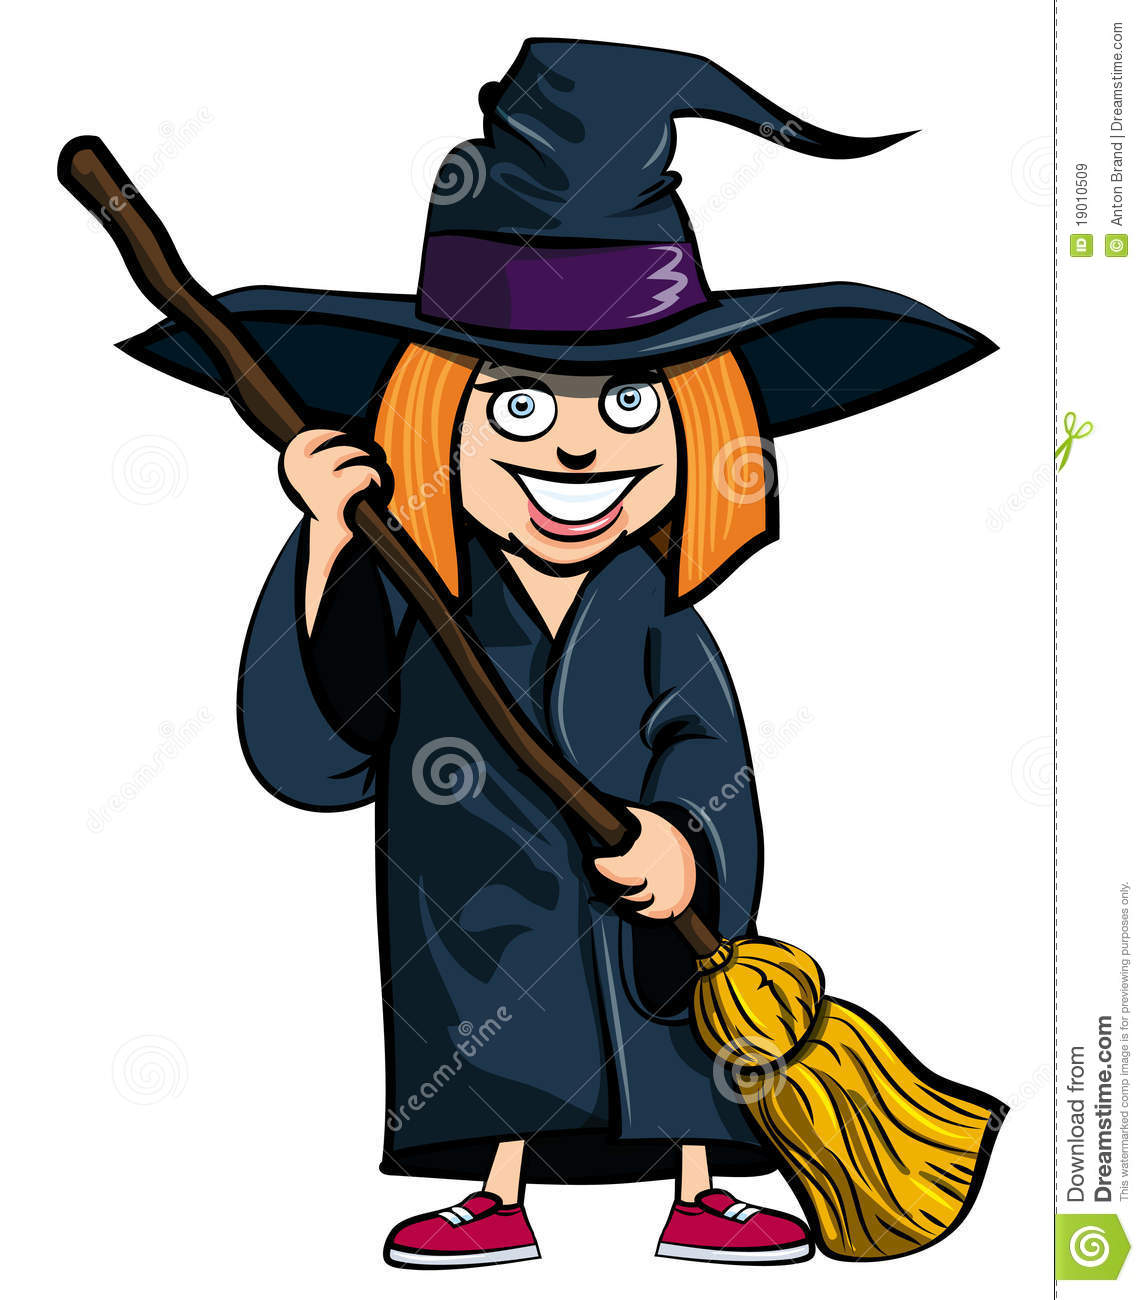 http://thumbs.dreamstime.com/z/cartoon-little-girl-witches-costume-19010509.jpg